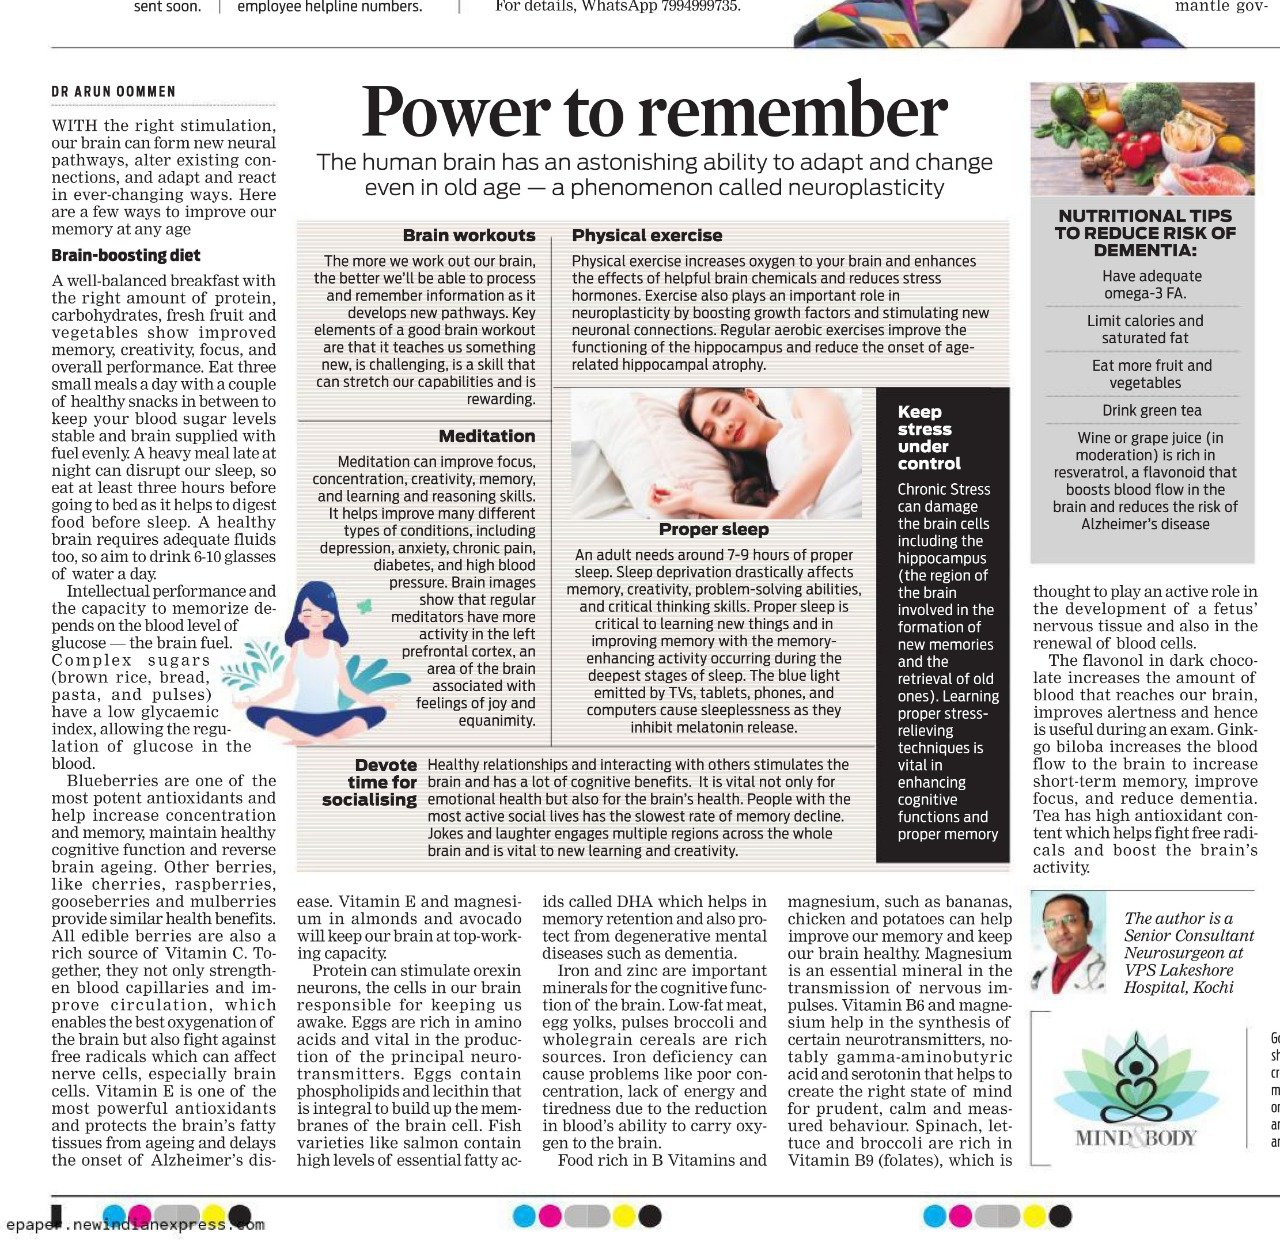 FOLLOW HEALTHY LIFESTYLE AND IMPROVE YOUR MEMORY POWER